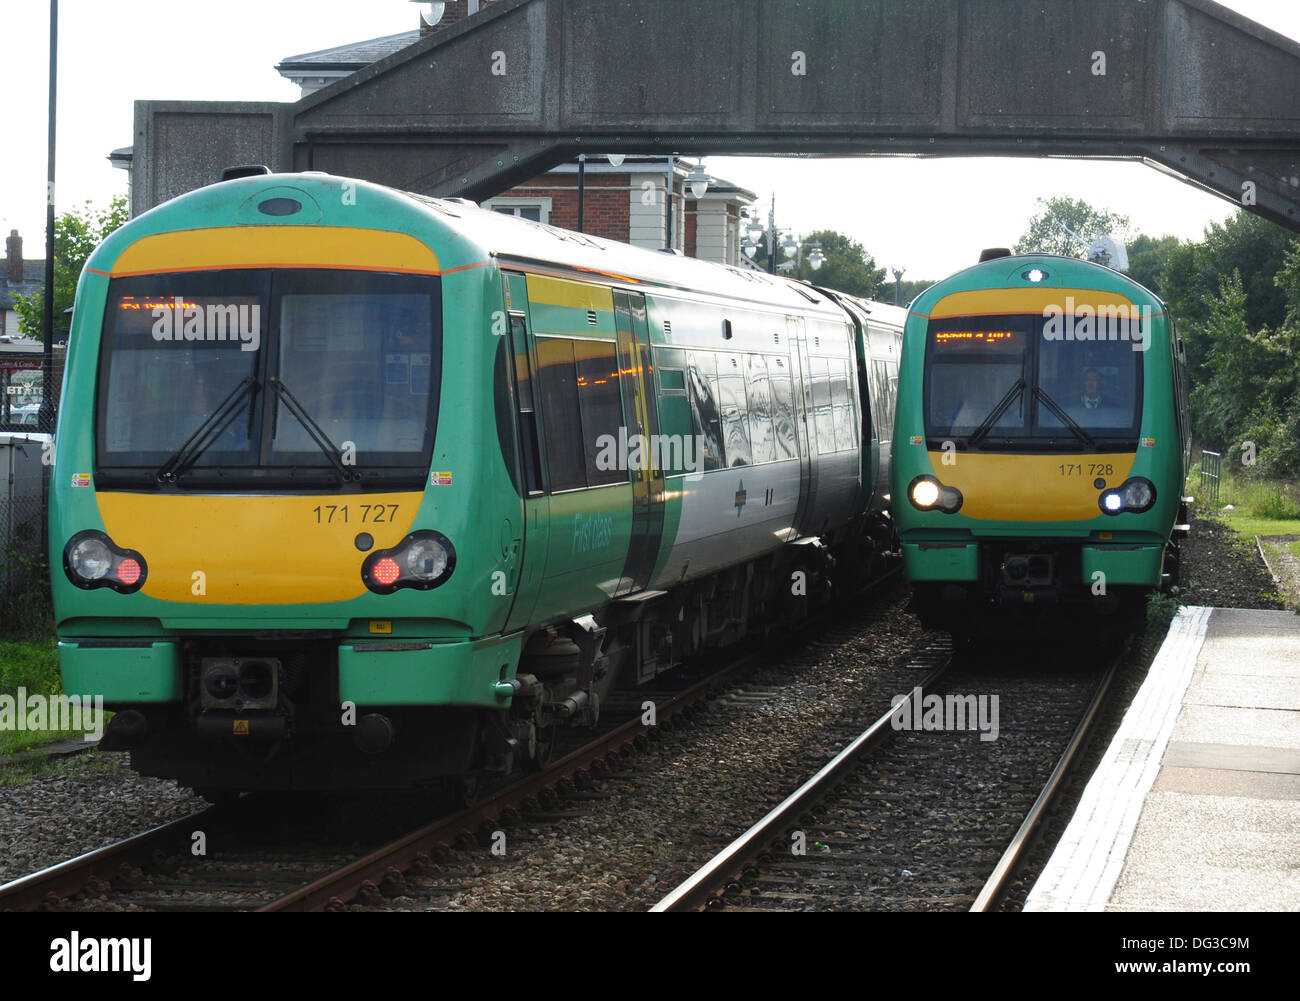 Class 171 Turbostar DMUs Nos 171727 and 171728 passing at the railway station, Rye, East Sussex, England, UK - Stock Image